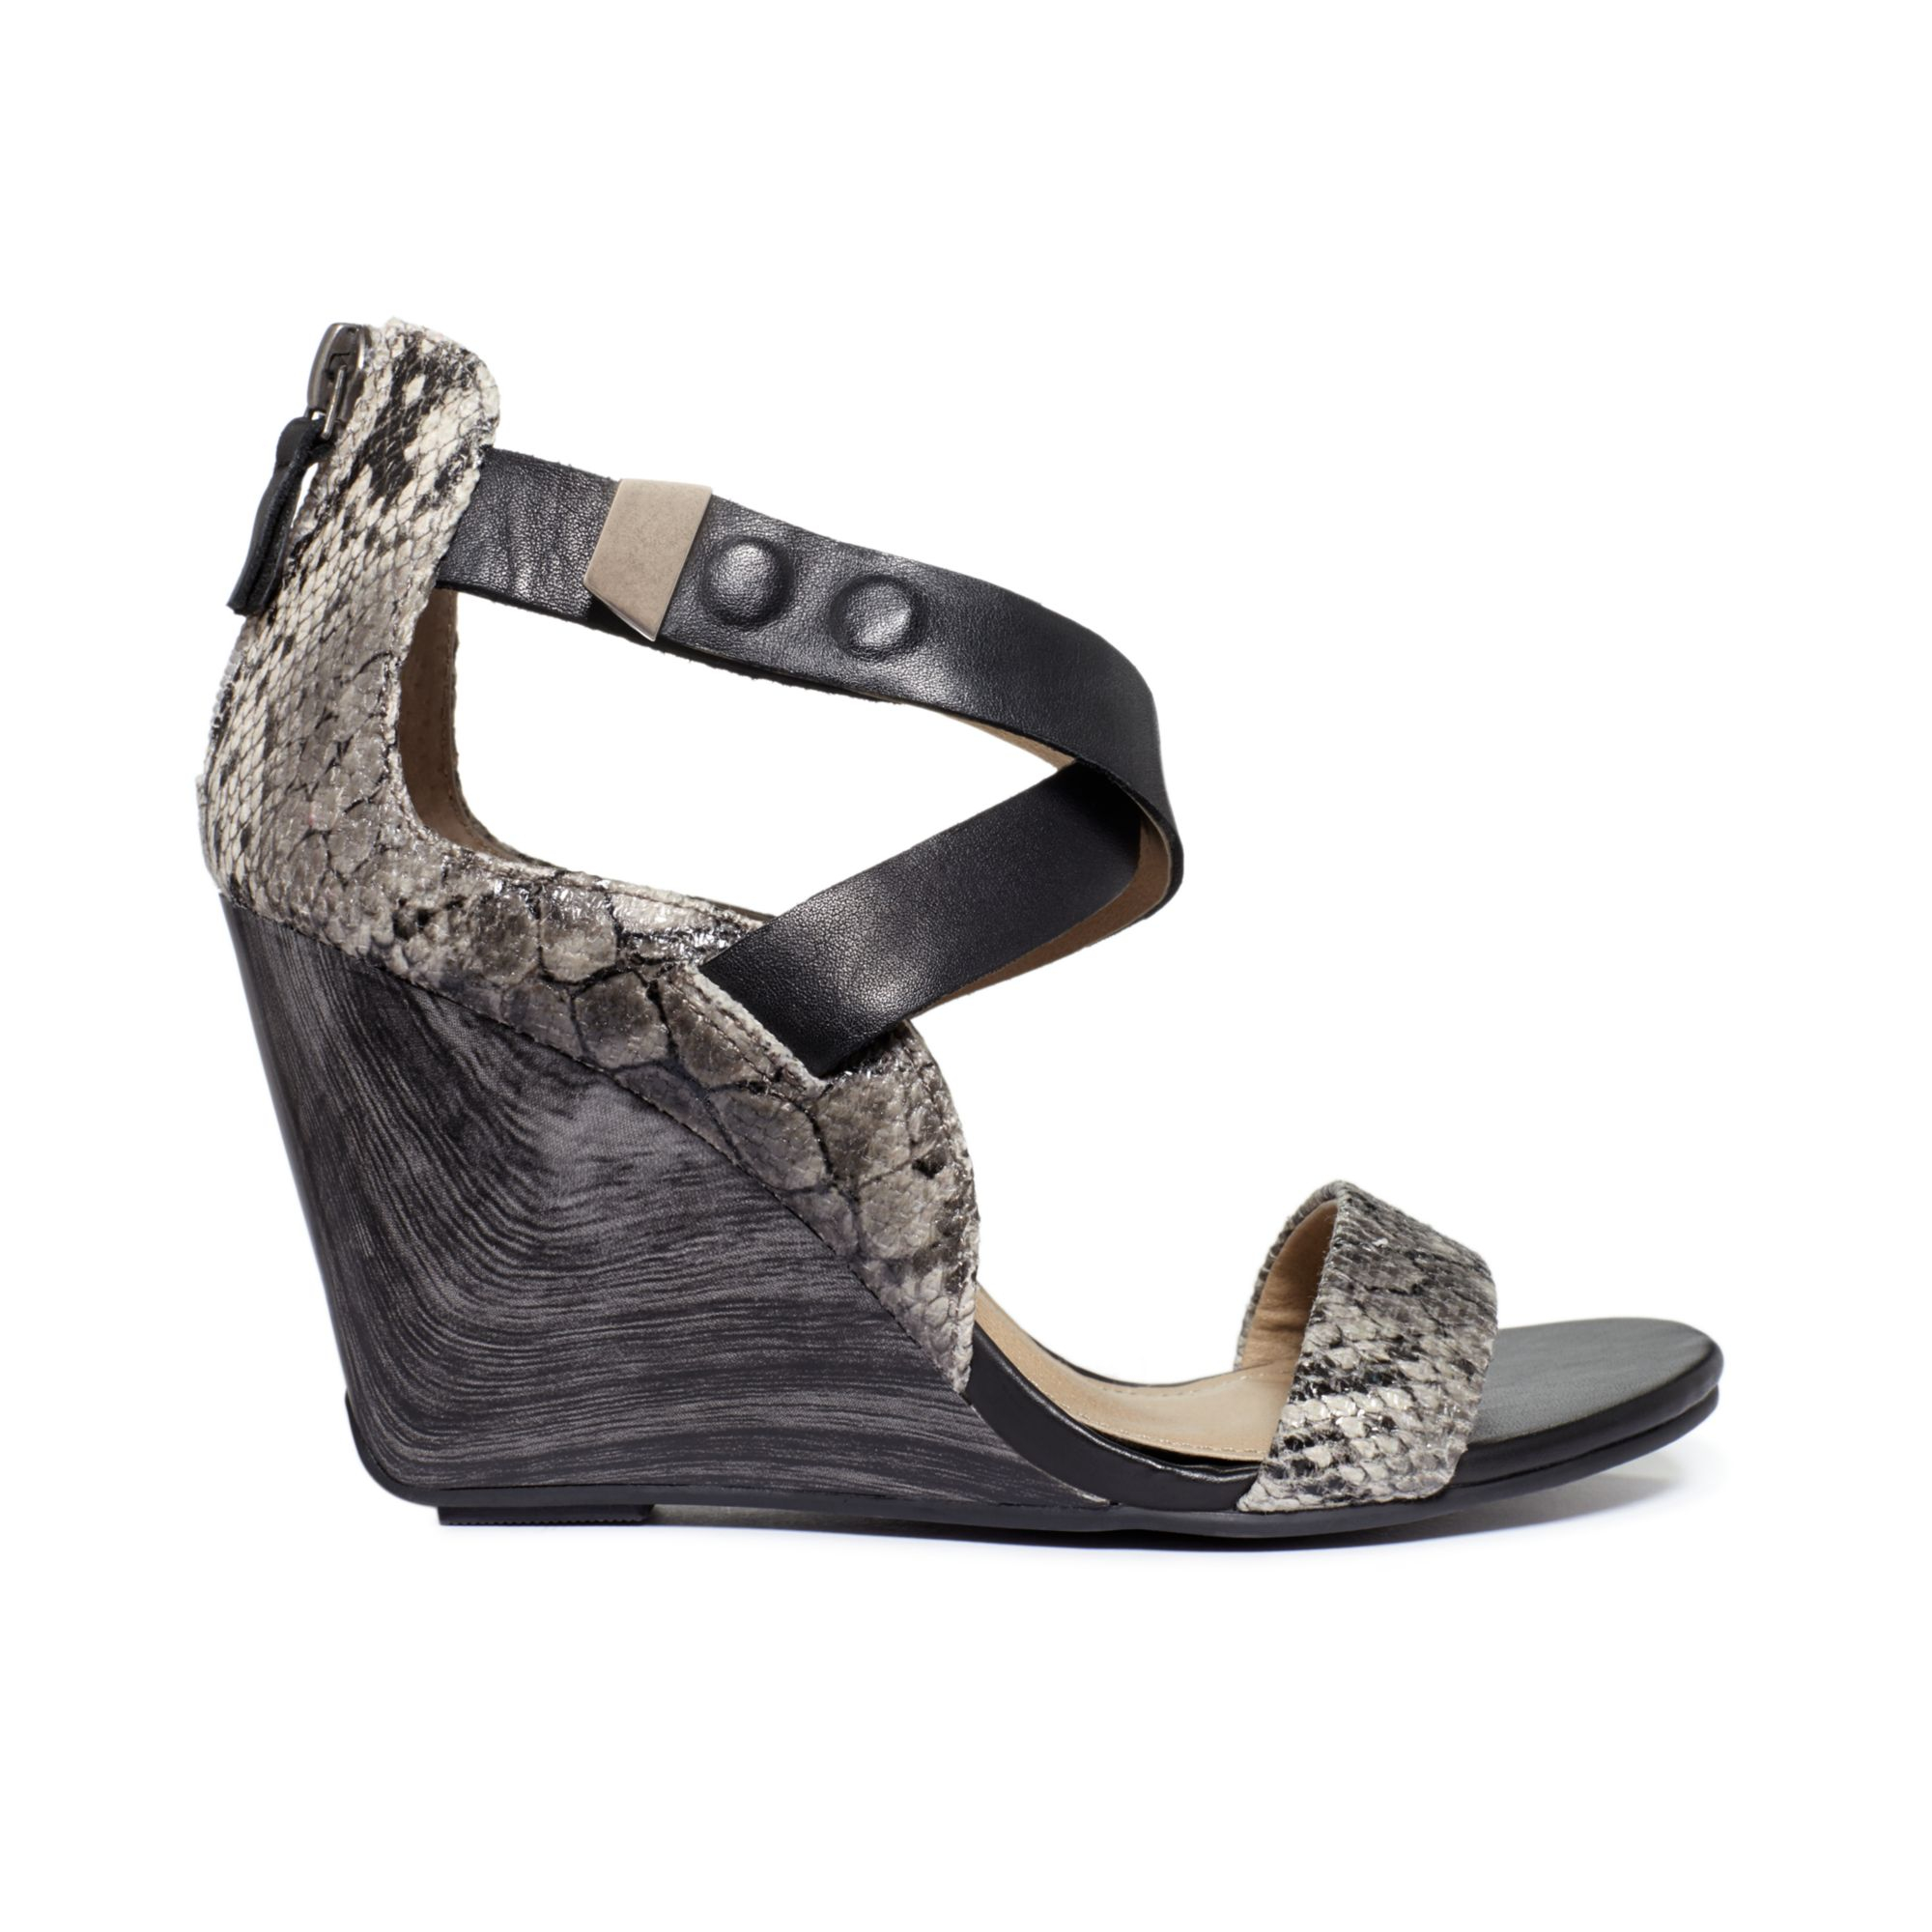 9e3cd2bd5d2 Lyst - Kenneth Cole Reaction Oh Ava Wedge Sandals in Gray